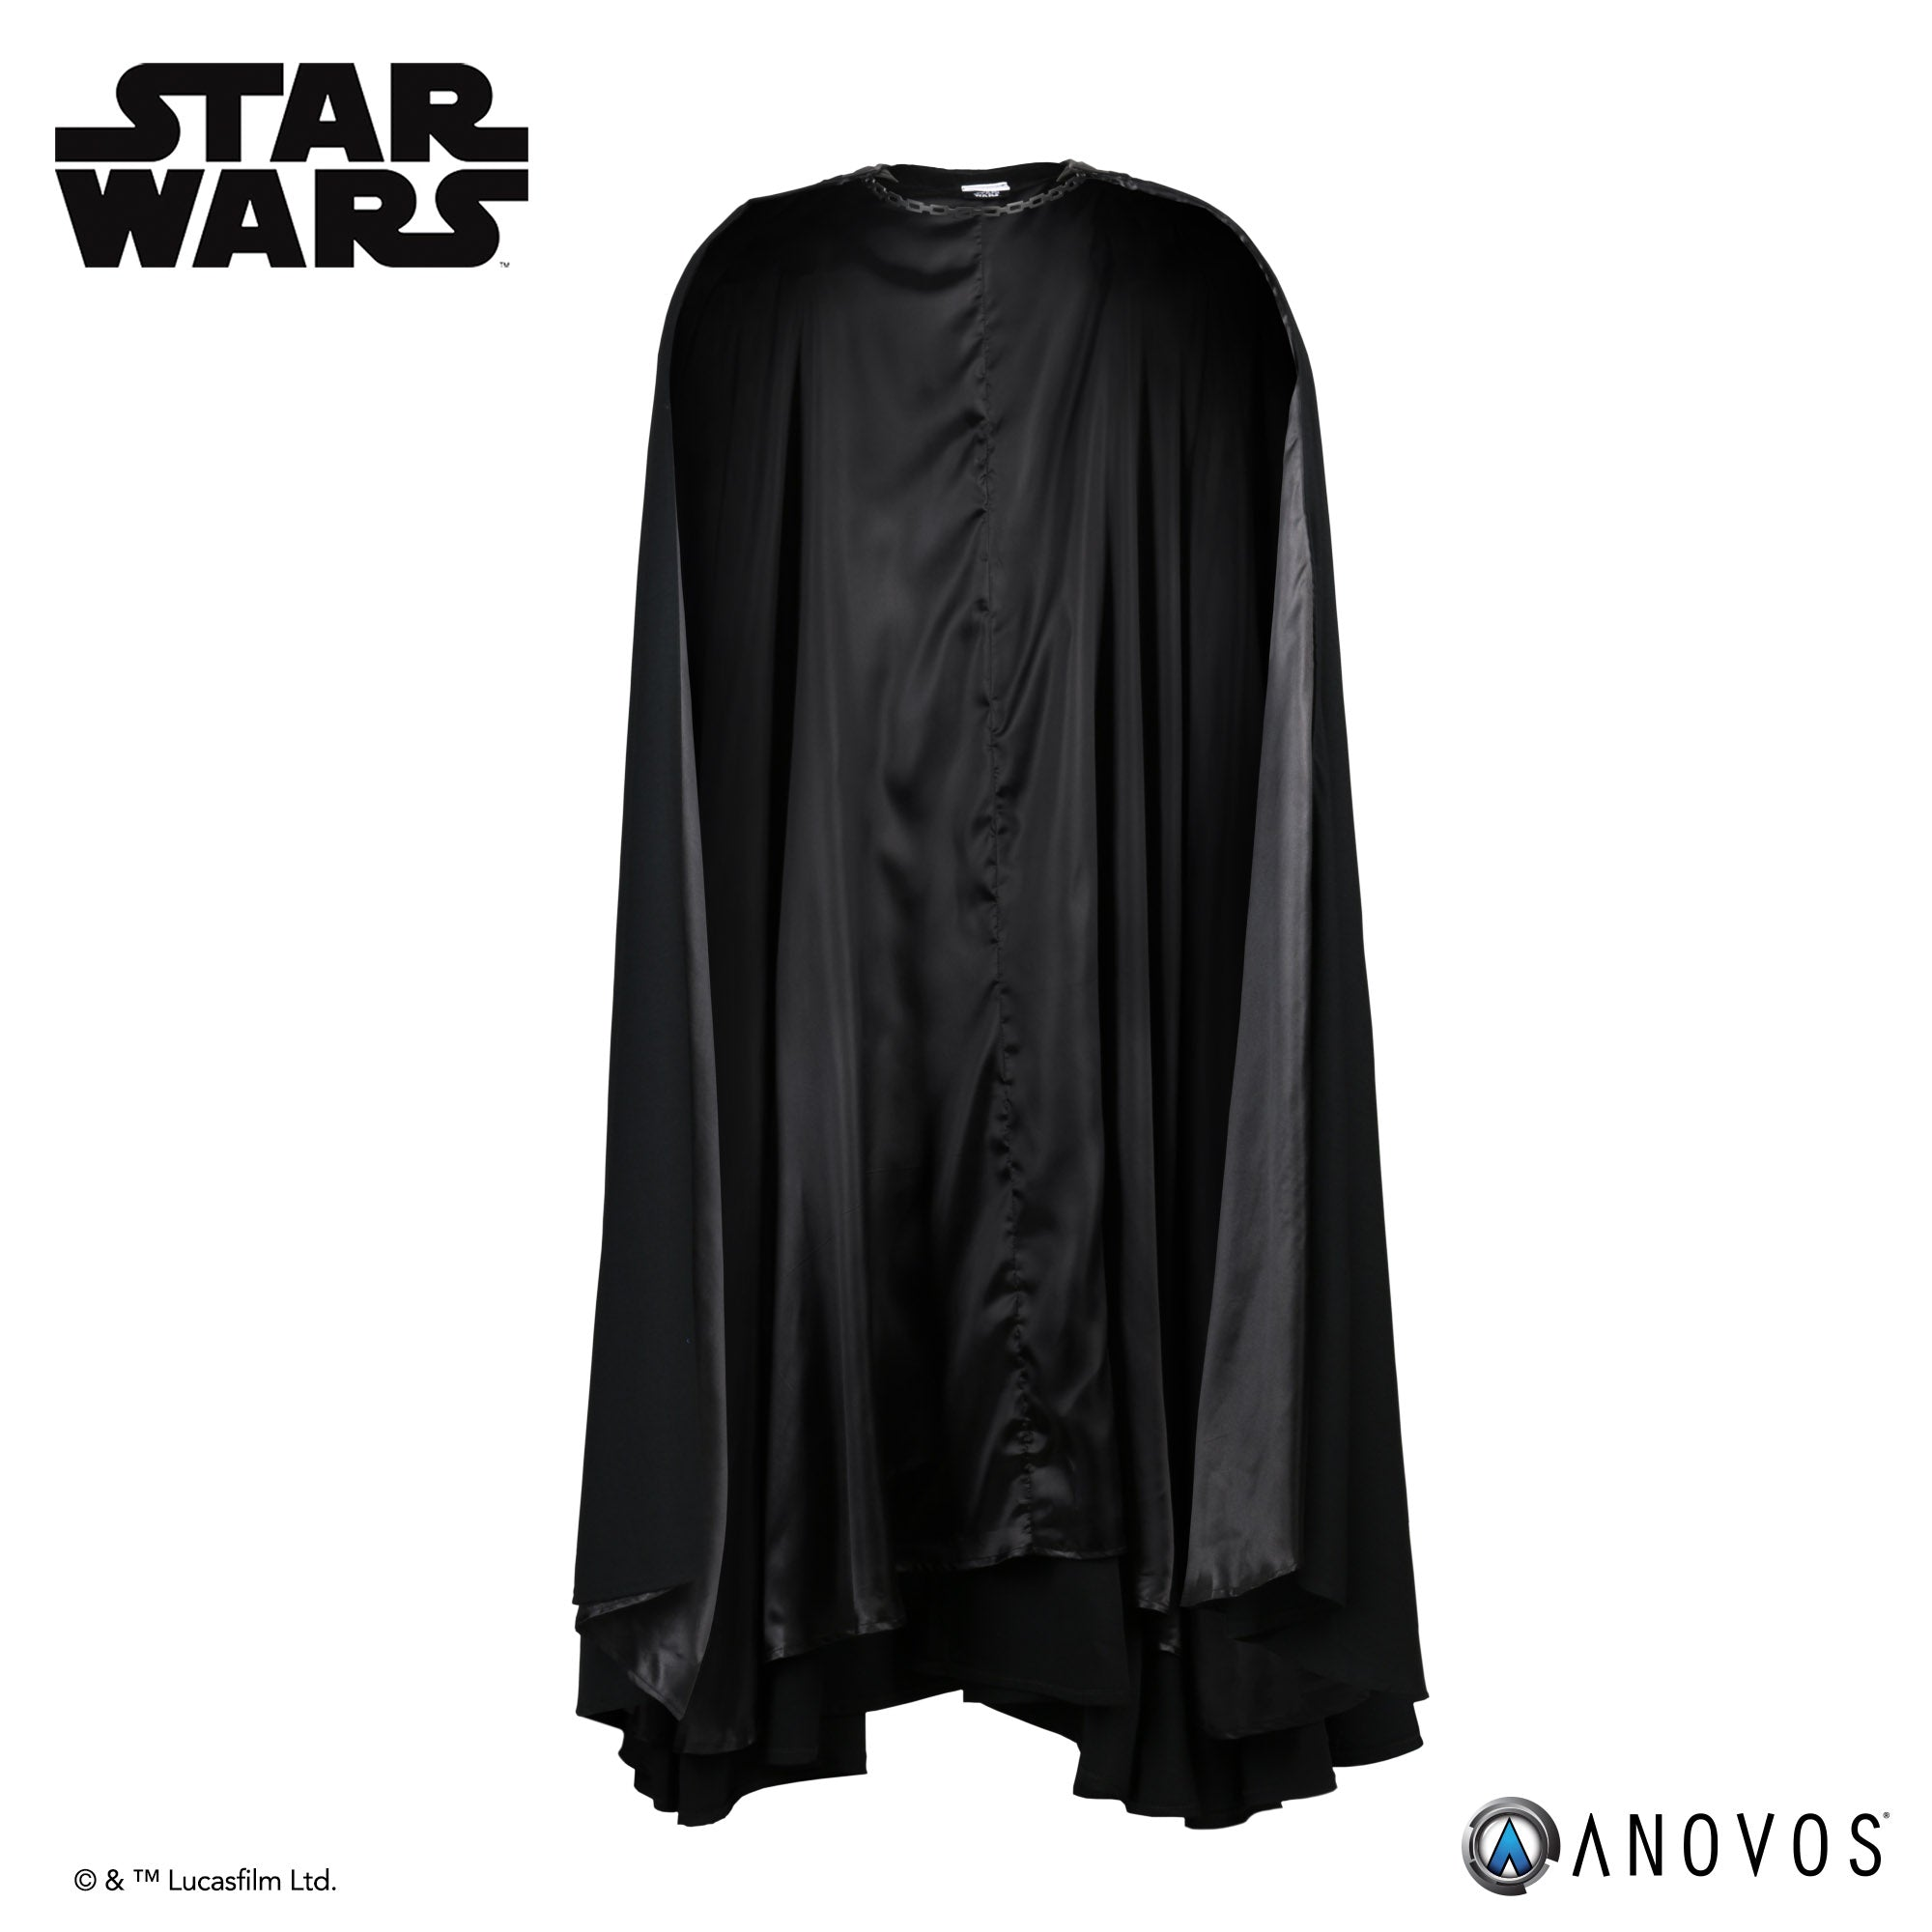 f67d01f48f63f6 STAR WARS™ Darth Vader Premier Line Cape Accessory | ANOVOS ...